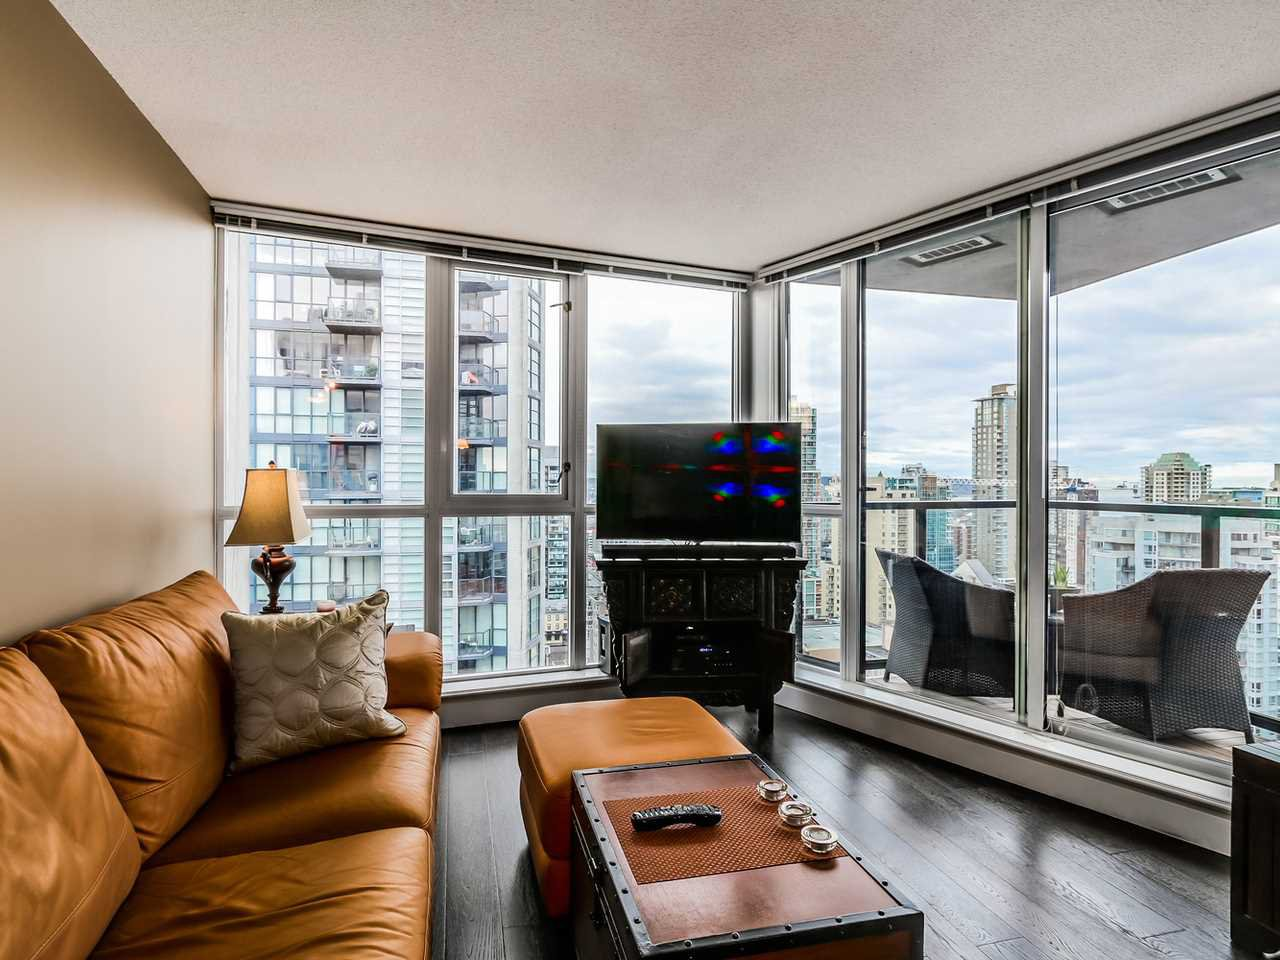 Main Photo: 2308 1155 SEYMOUR STREET in Vancouver: Downtown VW Condo for sale (Vancouver West)  : MLS®# R2026499